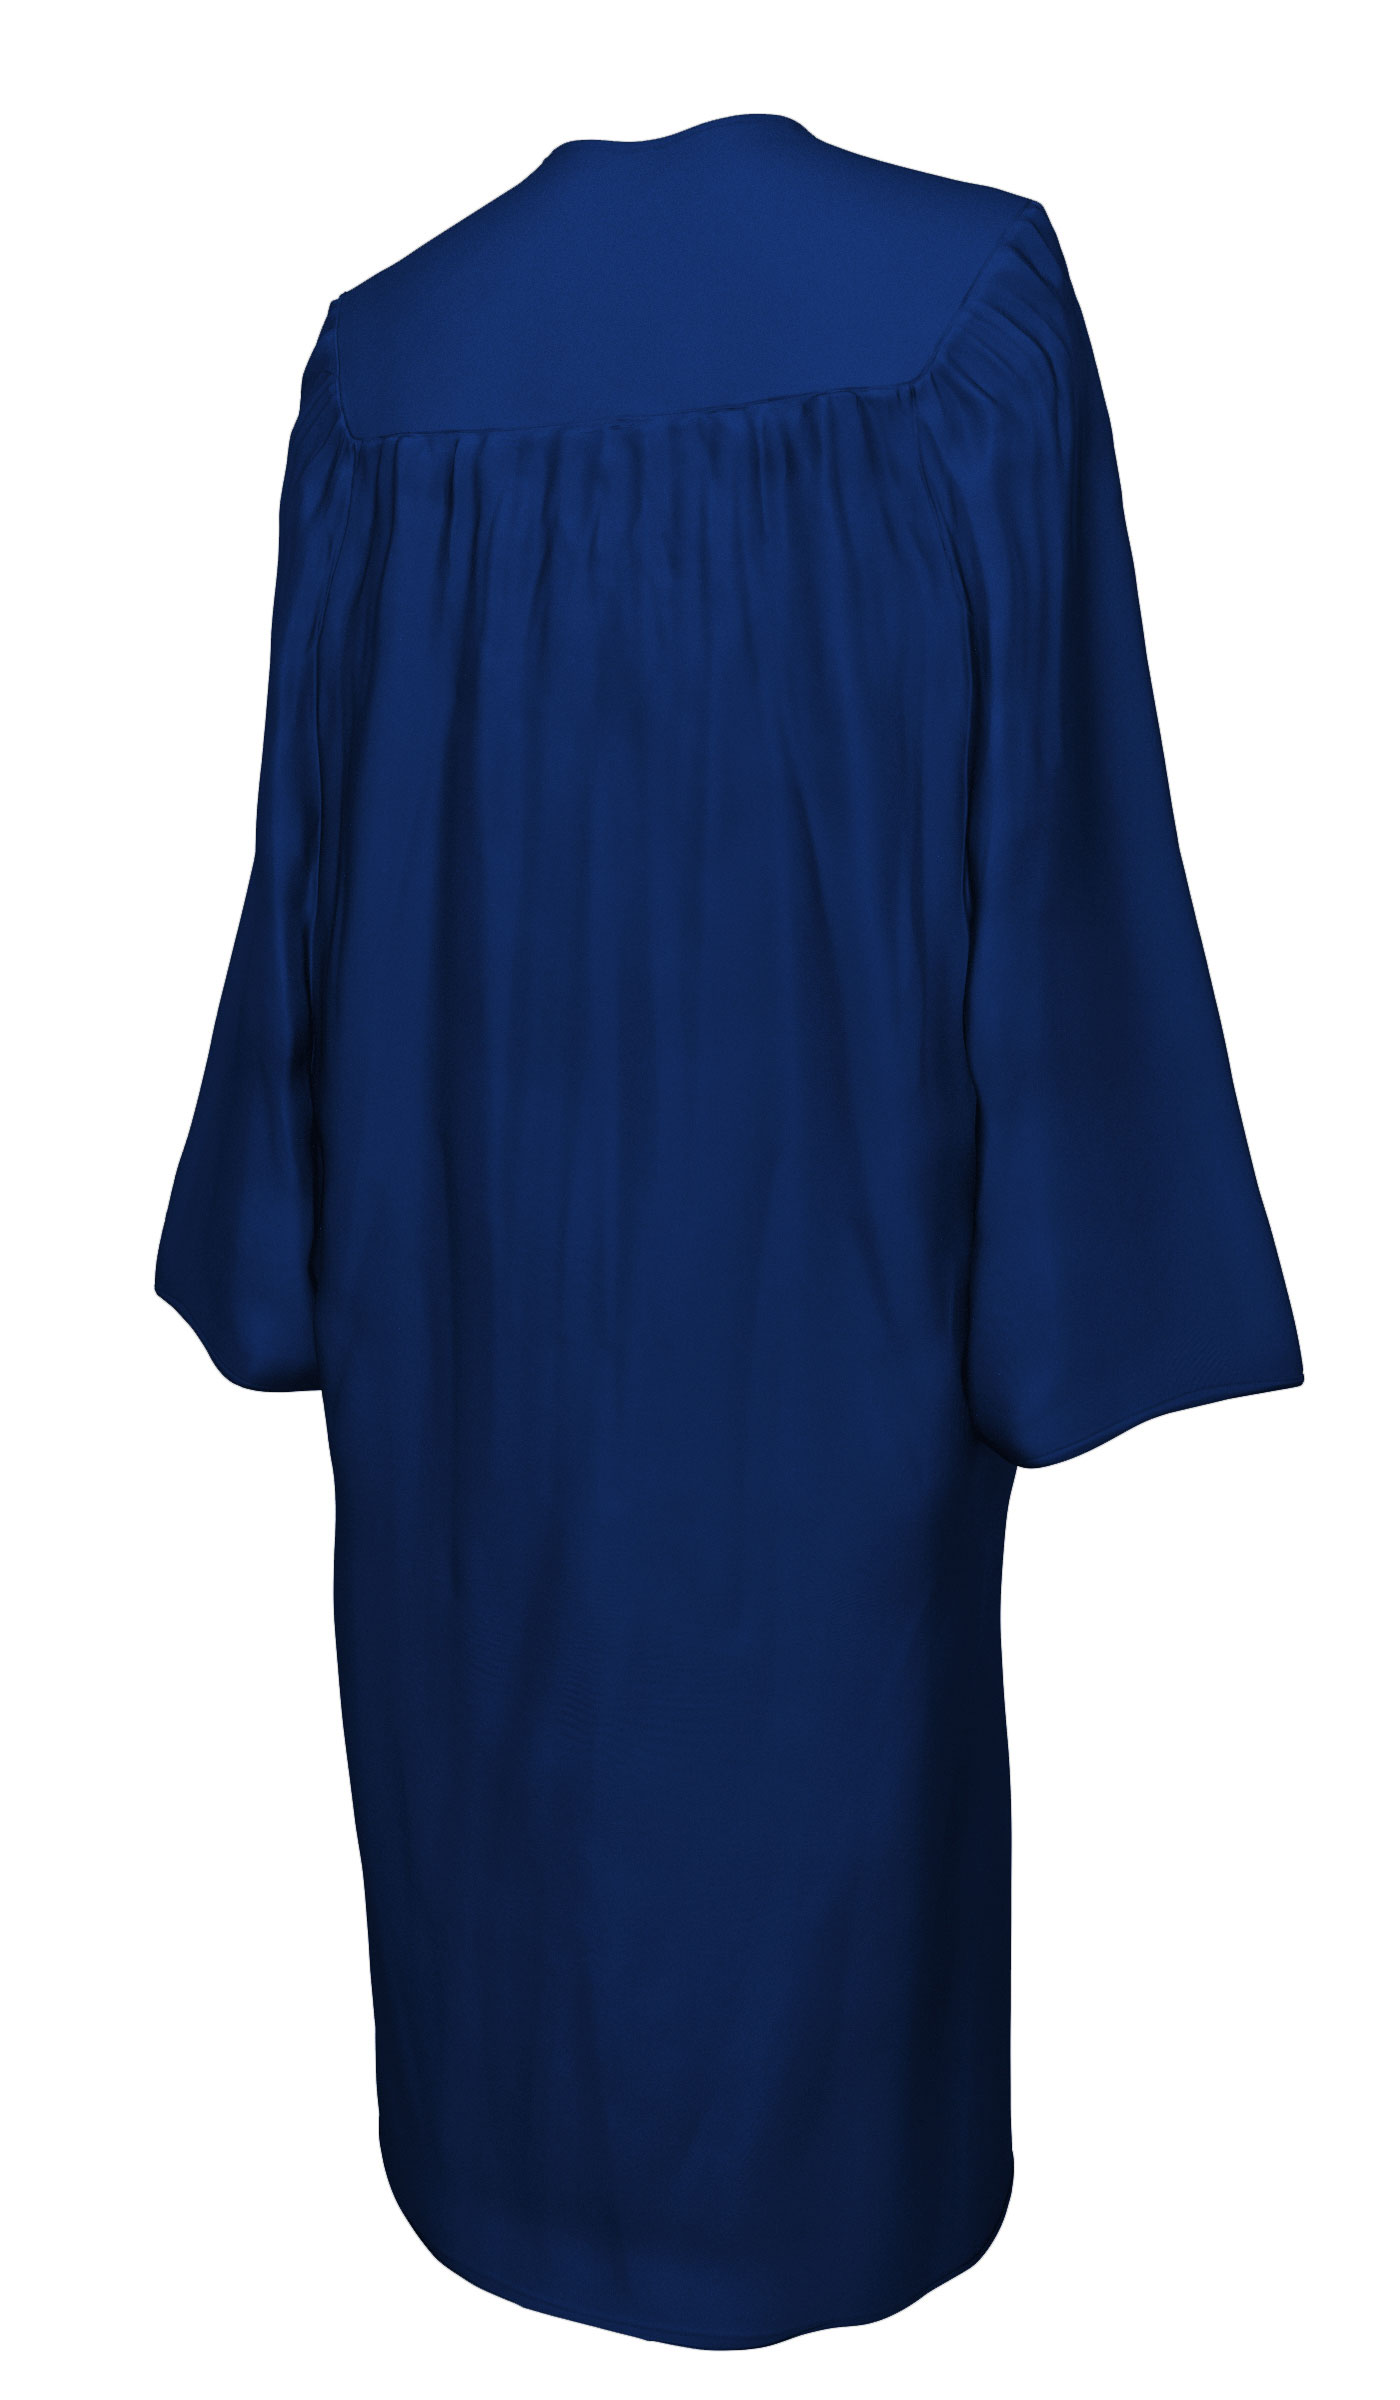 Matte Navy Blue Cap And Gown Rs4251465611256